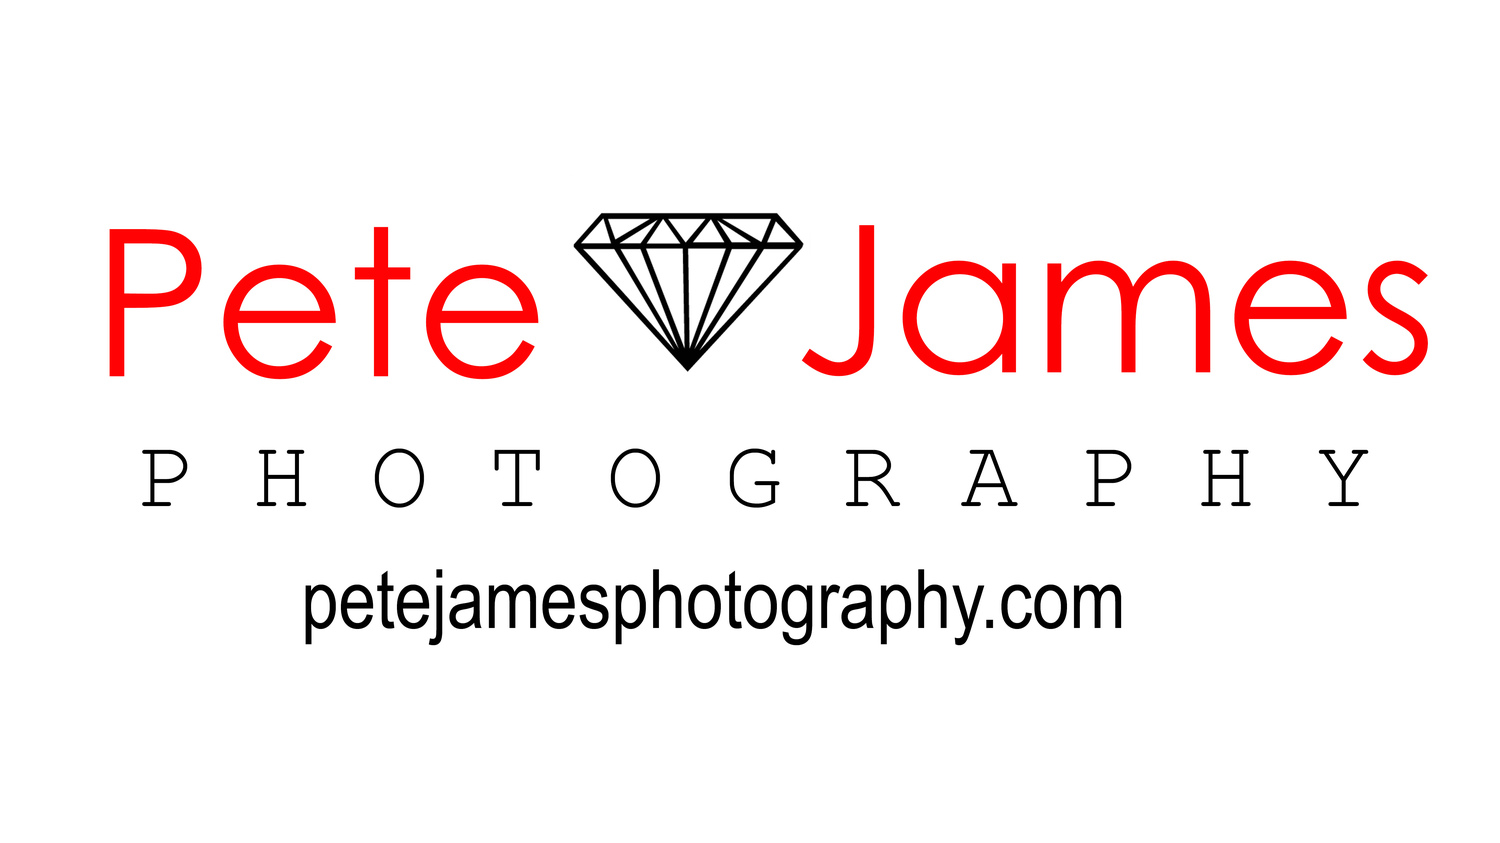 Pete James Photography